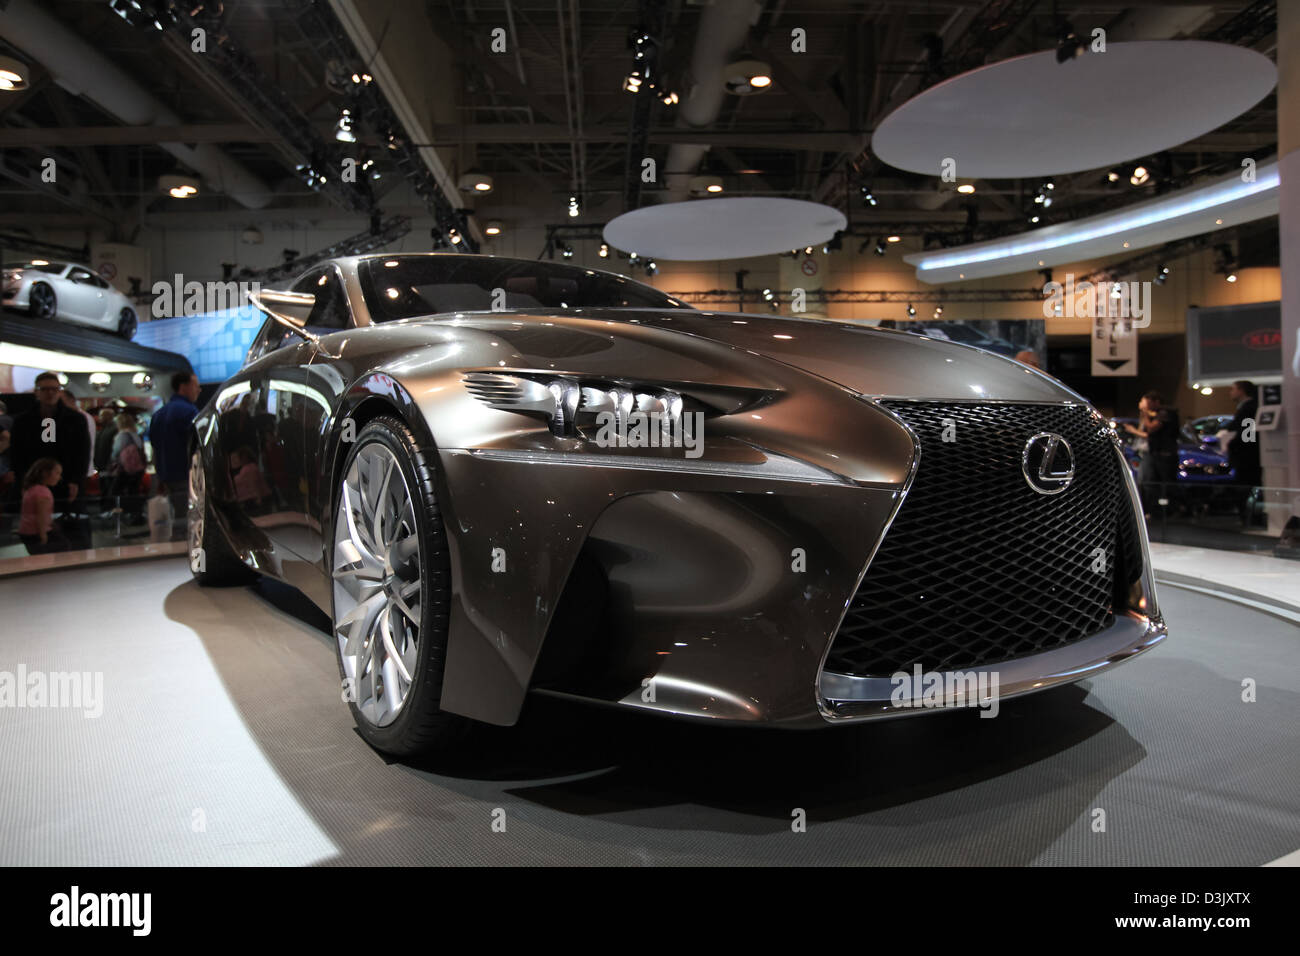 High Quality Lexus Lf Cc Concept Car Front Grill   Stock Image